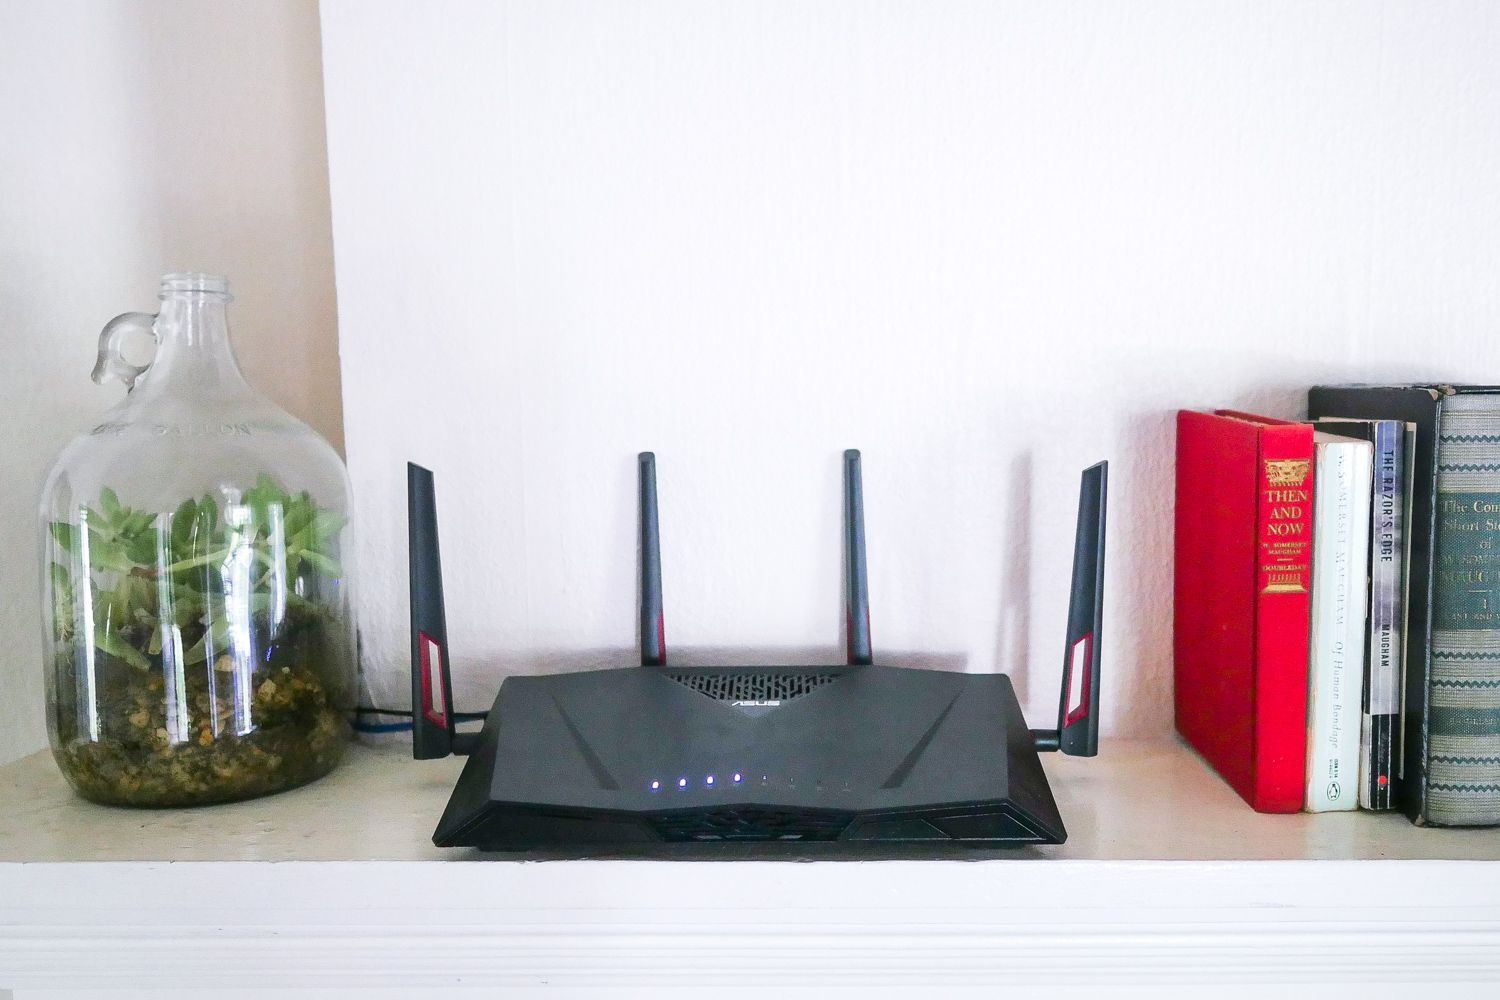 The 11 Best Gaming Routers of 2019